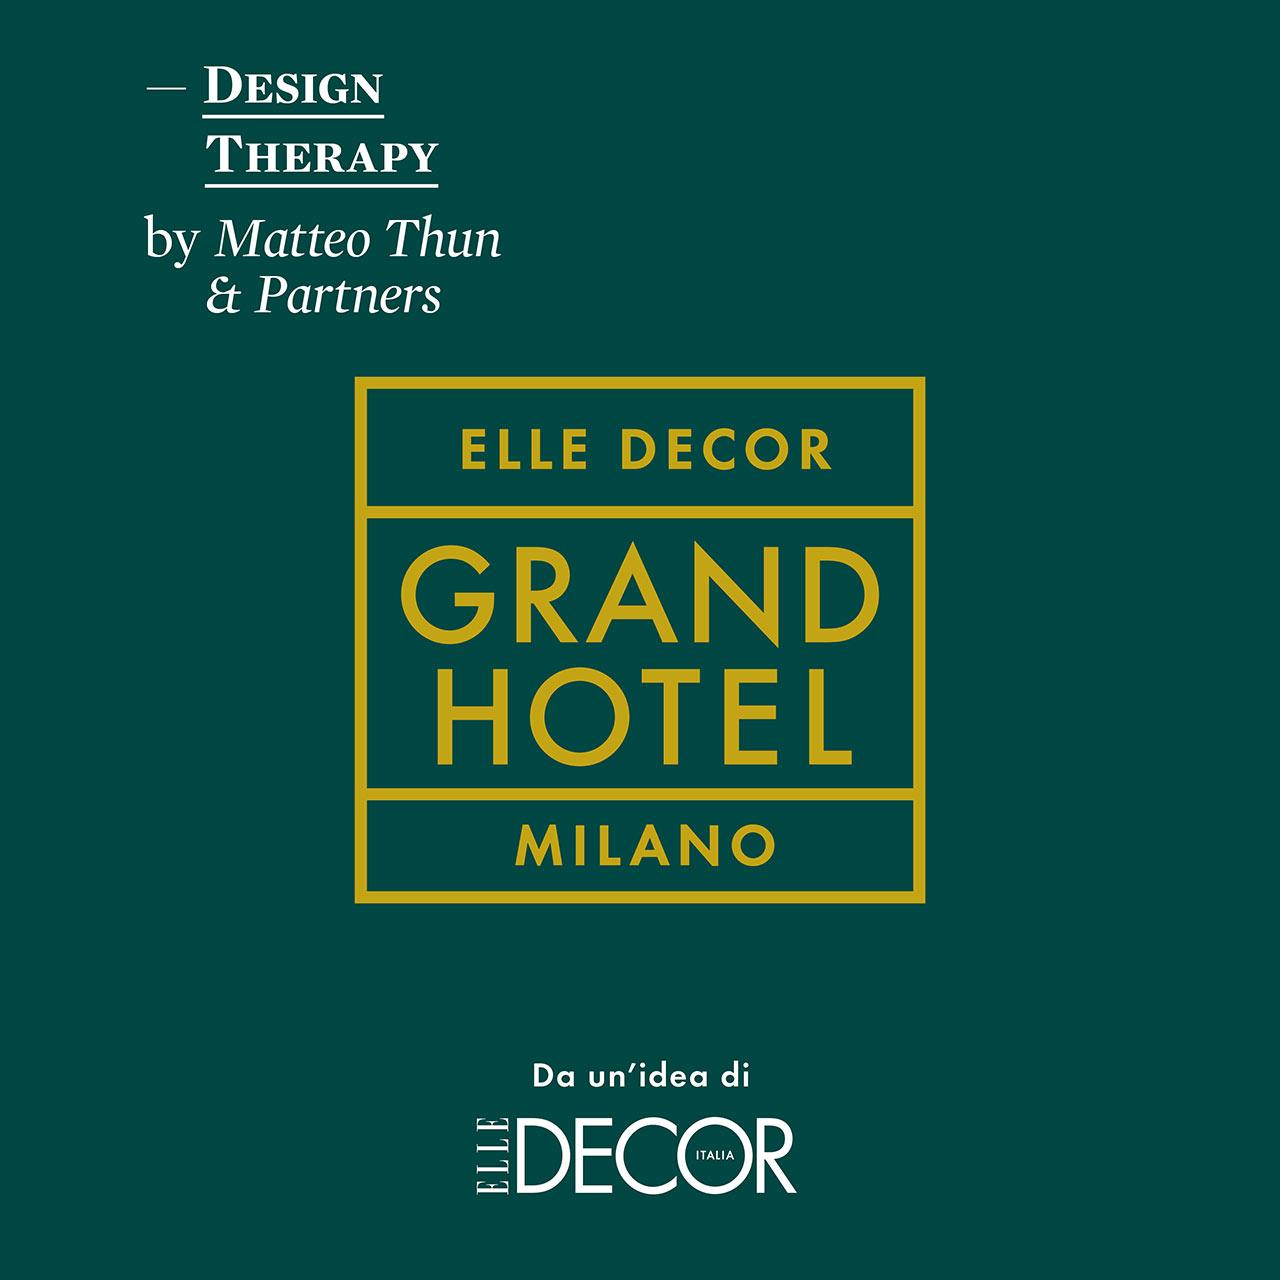 Elle Decor Grand Hotel. Design Therapy